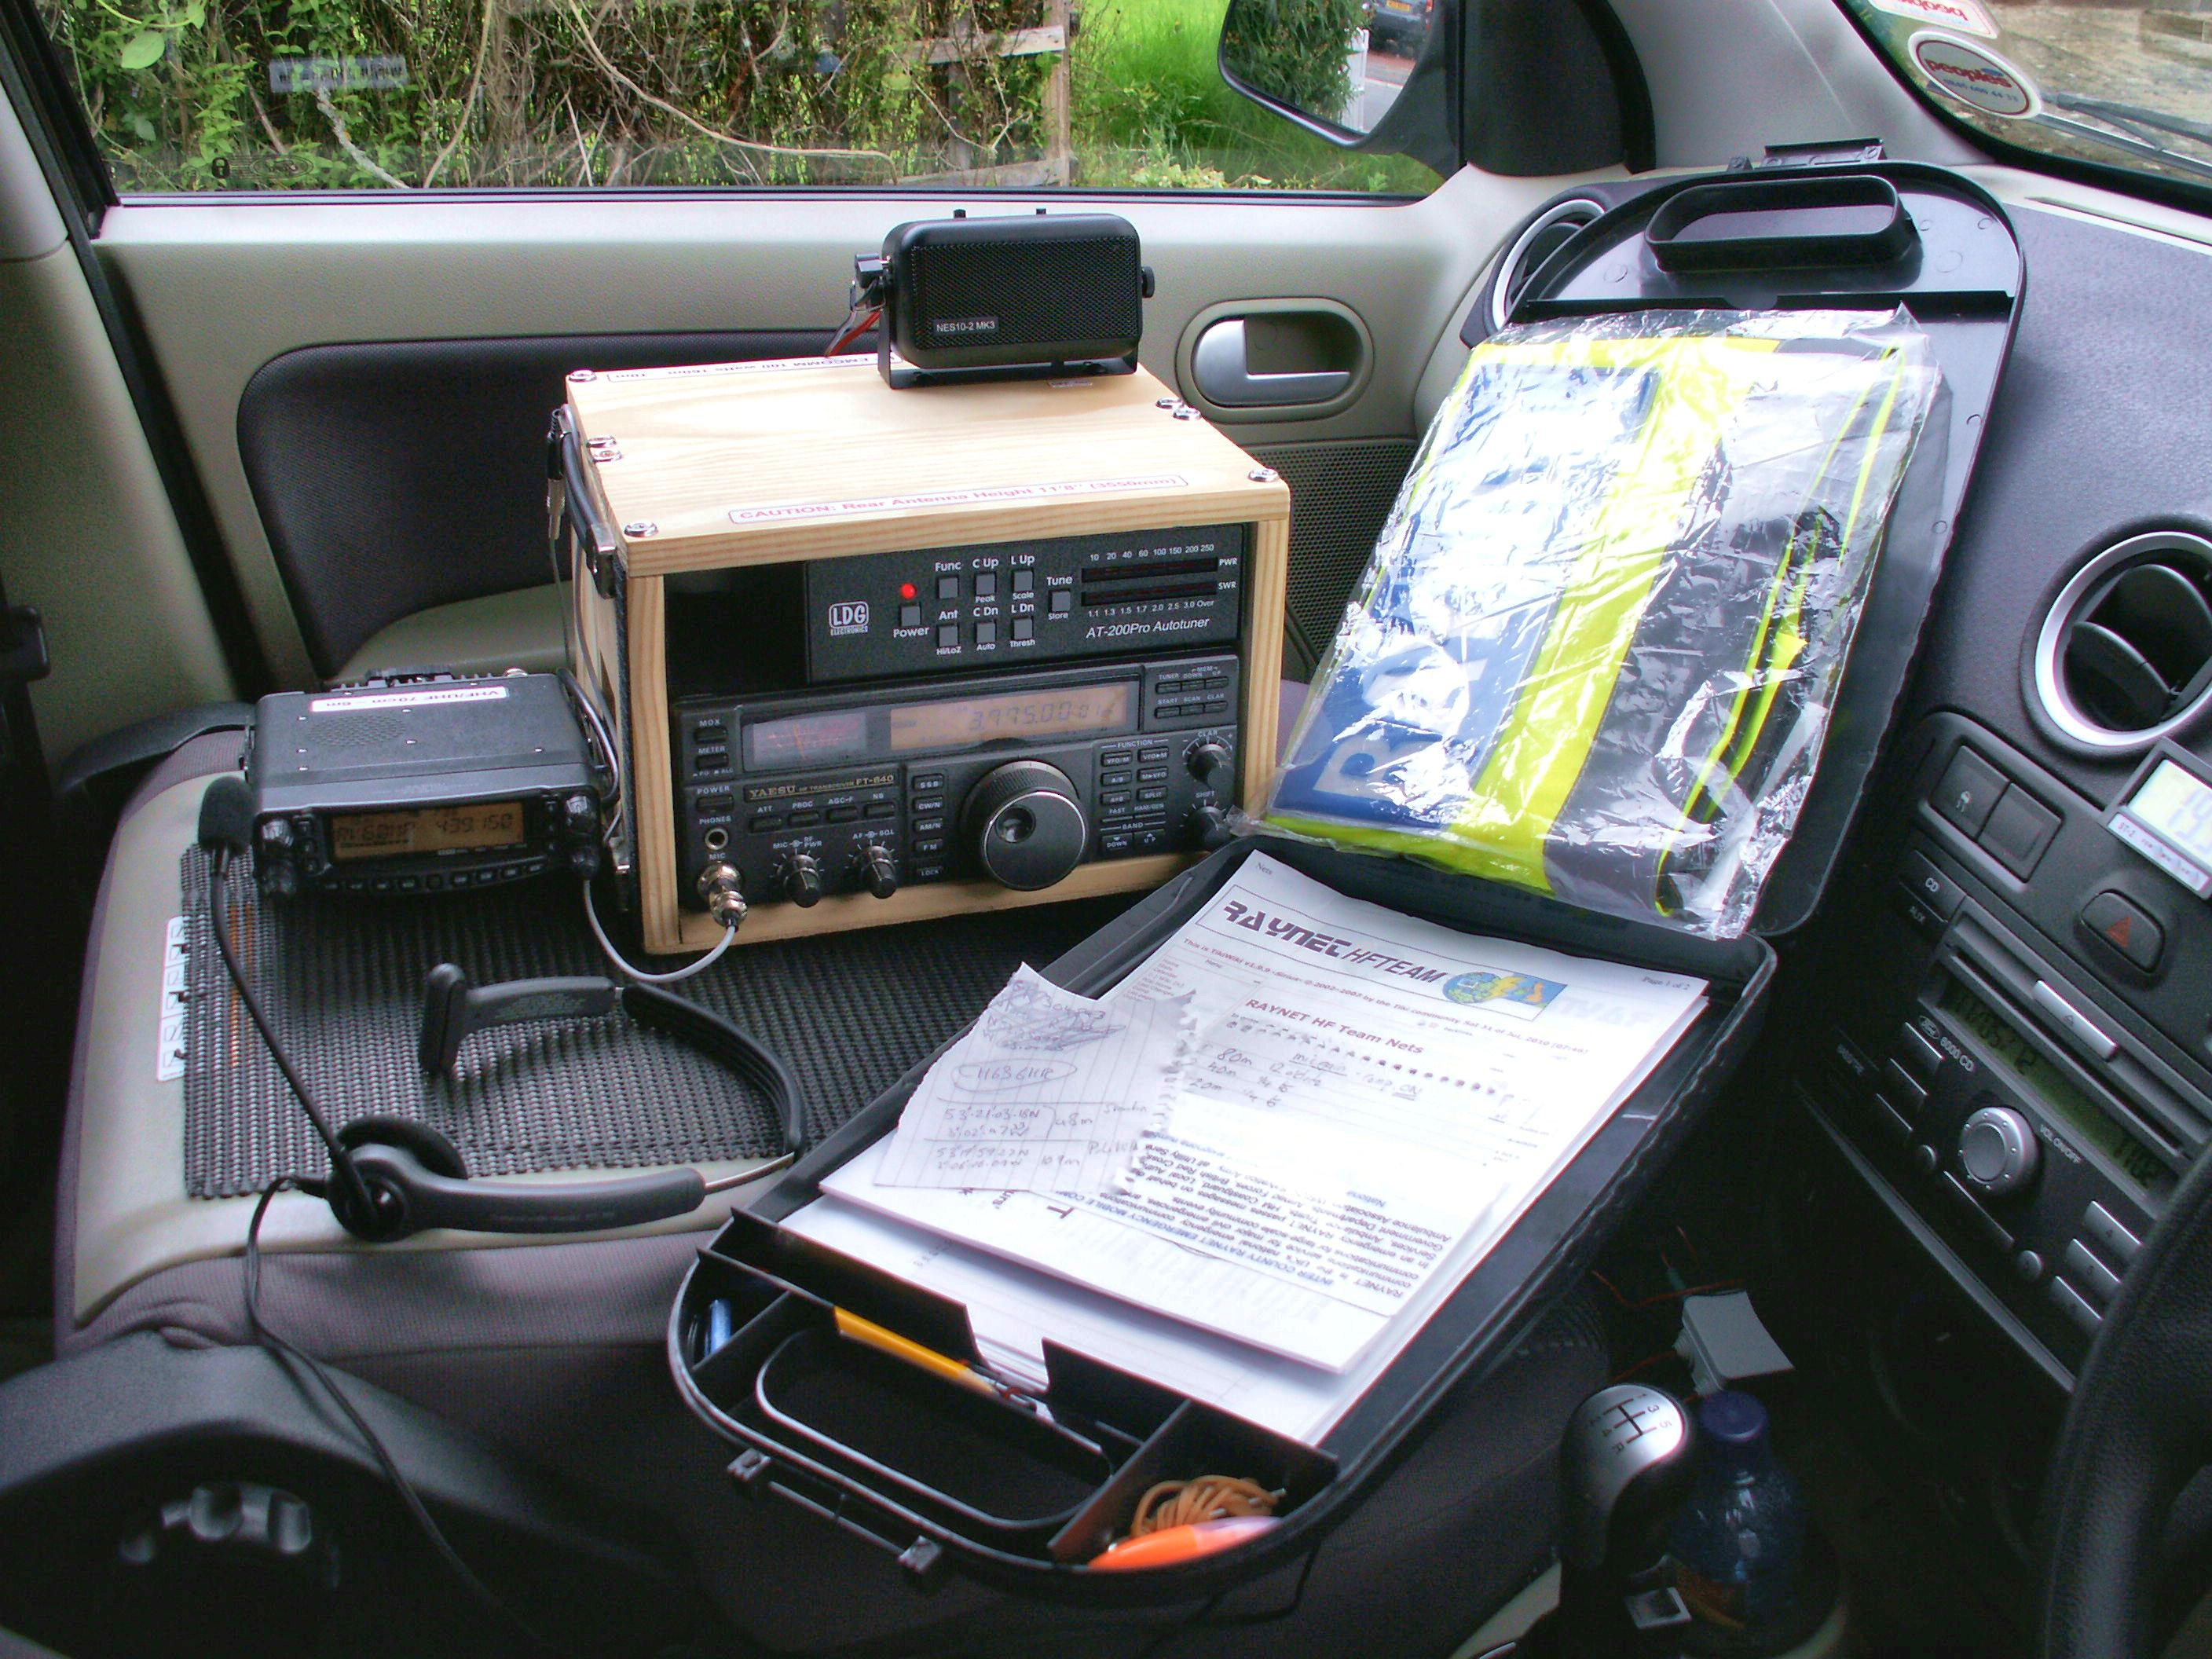 Radios and clipboard